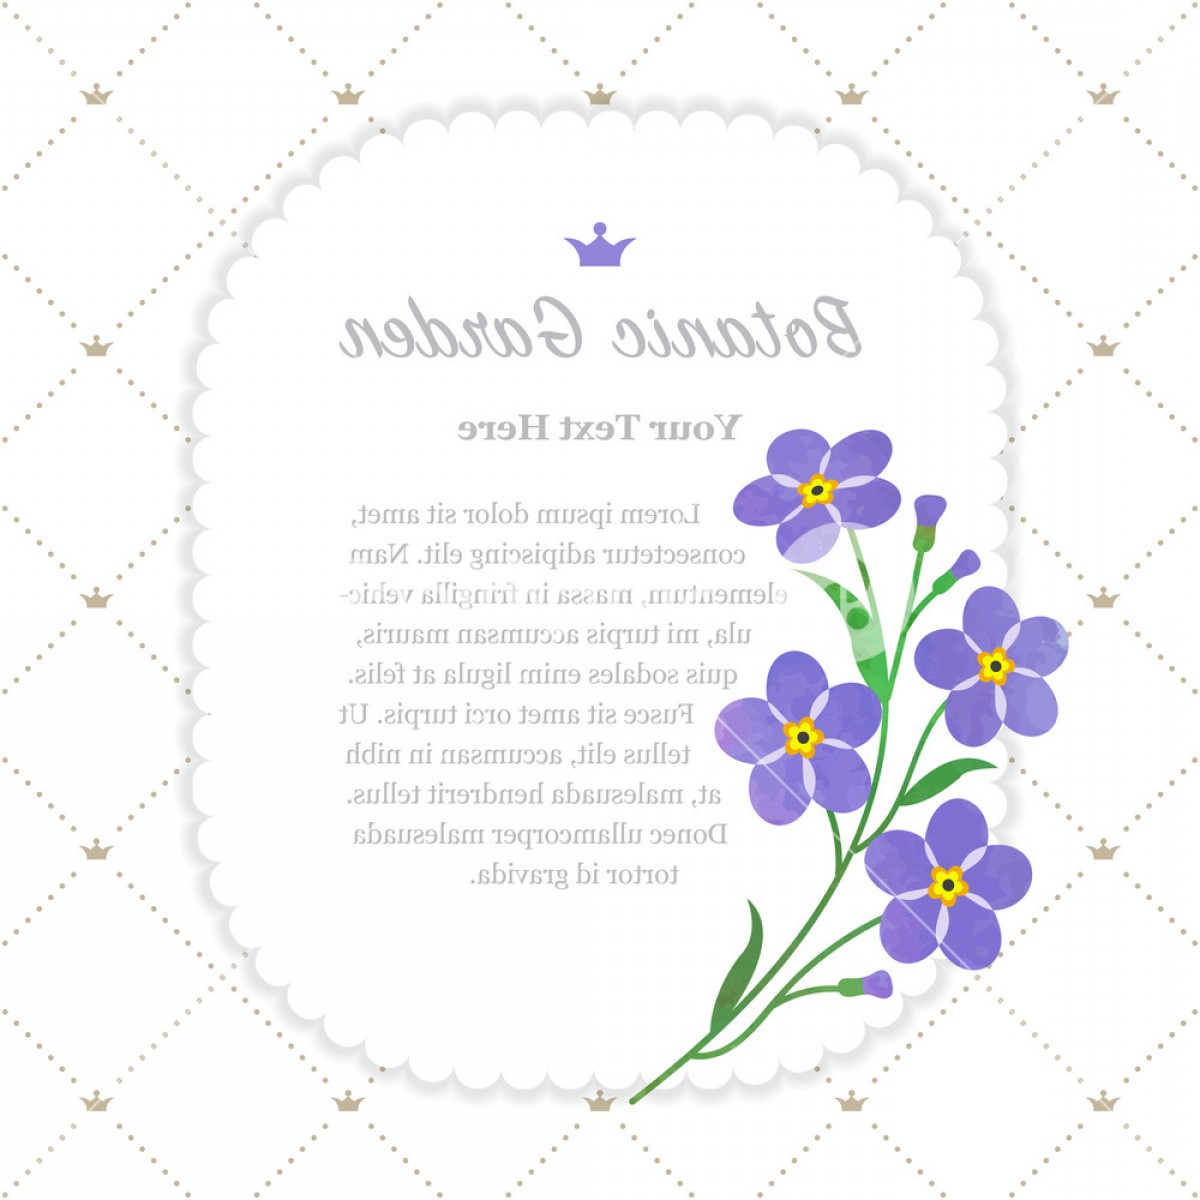 Get For Me Not Flower Watercolor Vector Art: Colorful Watercolor Texture Vector Nature Botanic Garden Memo Frame Violet Forget Me Not Hjmnneosdjlgmcbu